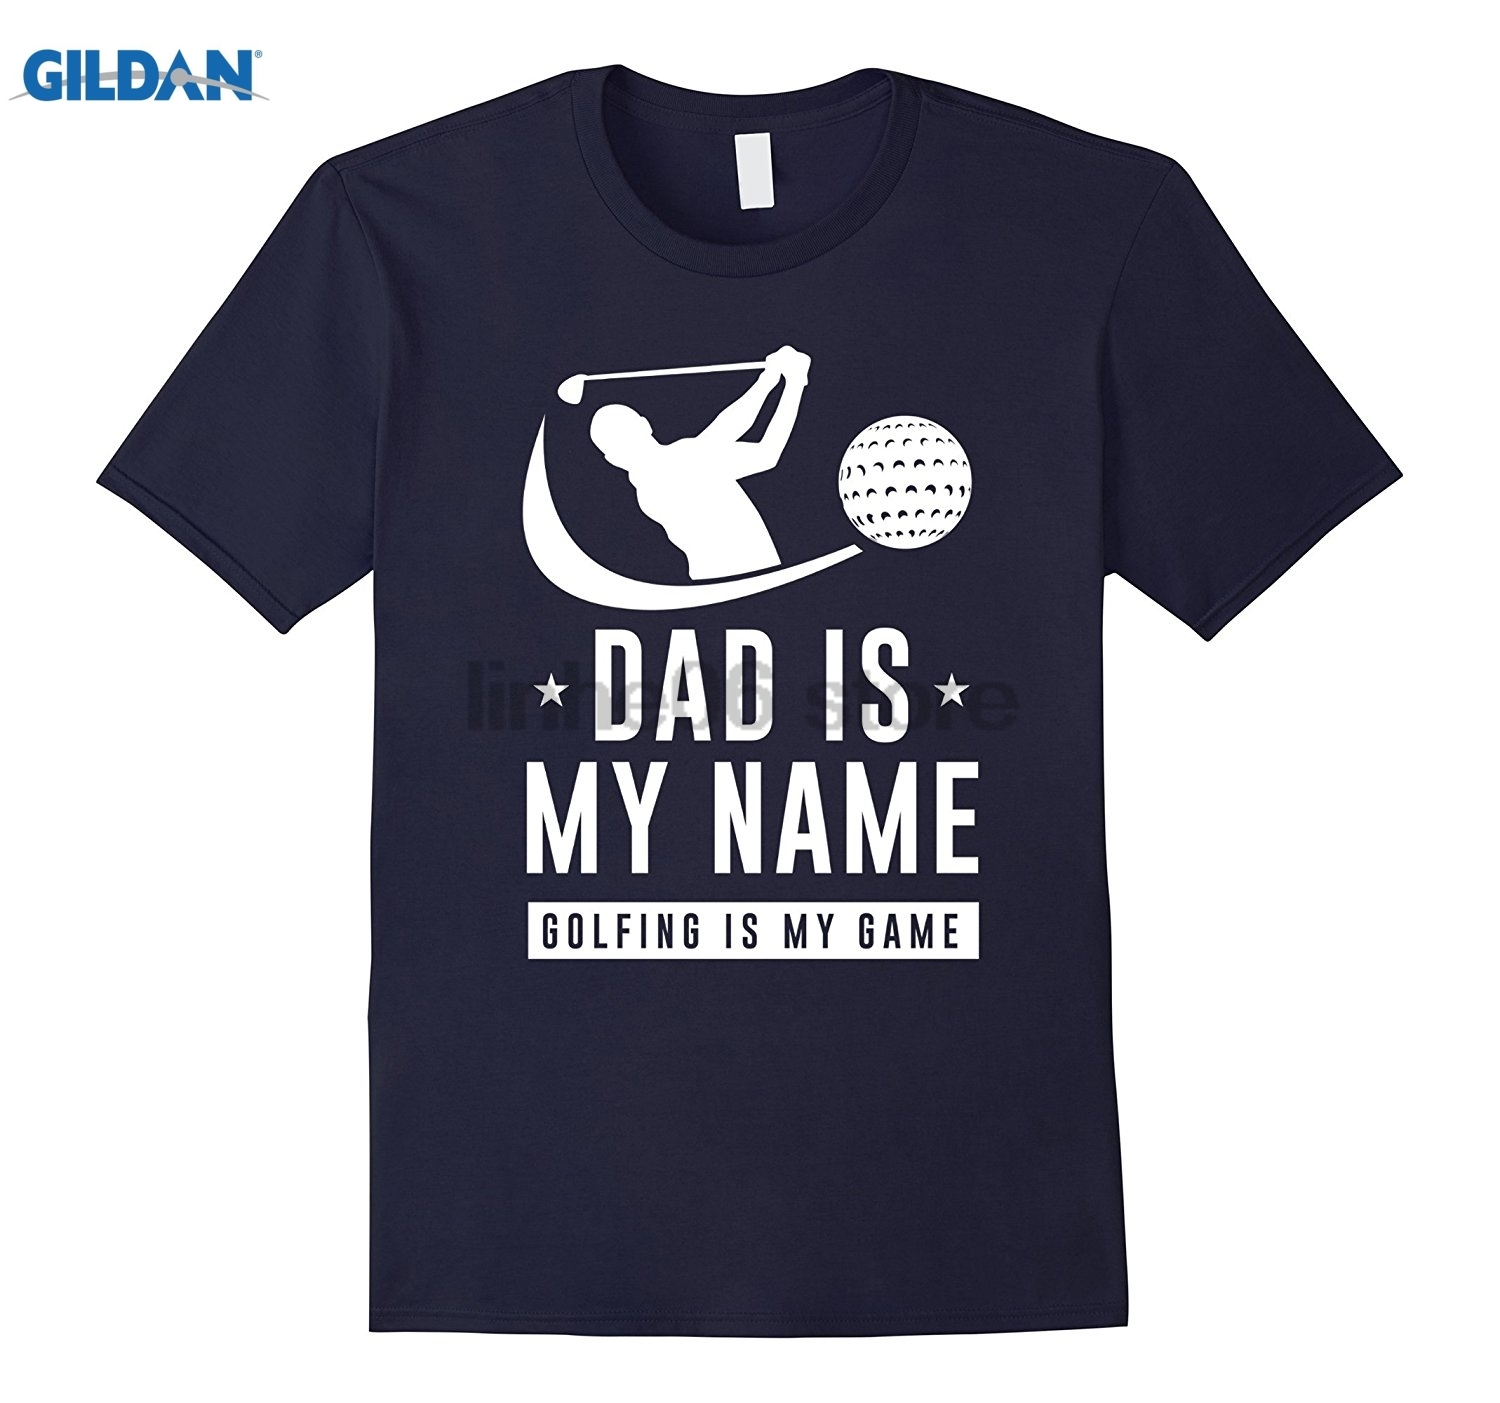 GILDAN Dad Is My Name - Golfing Is My Game Funny Tee Mothers Day Ms. T-shirt